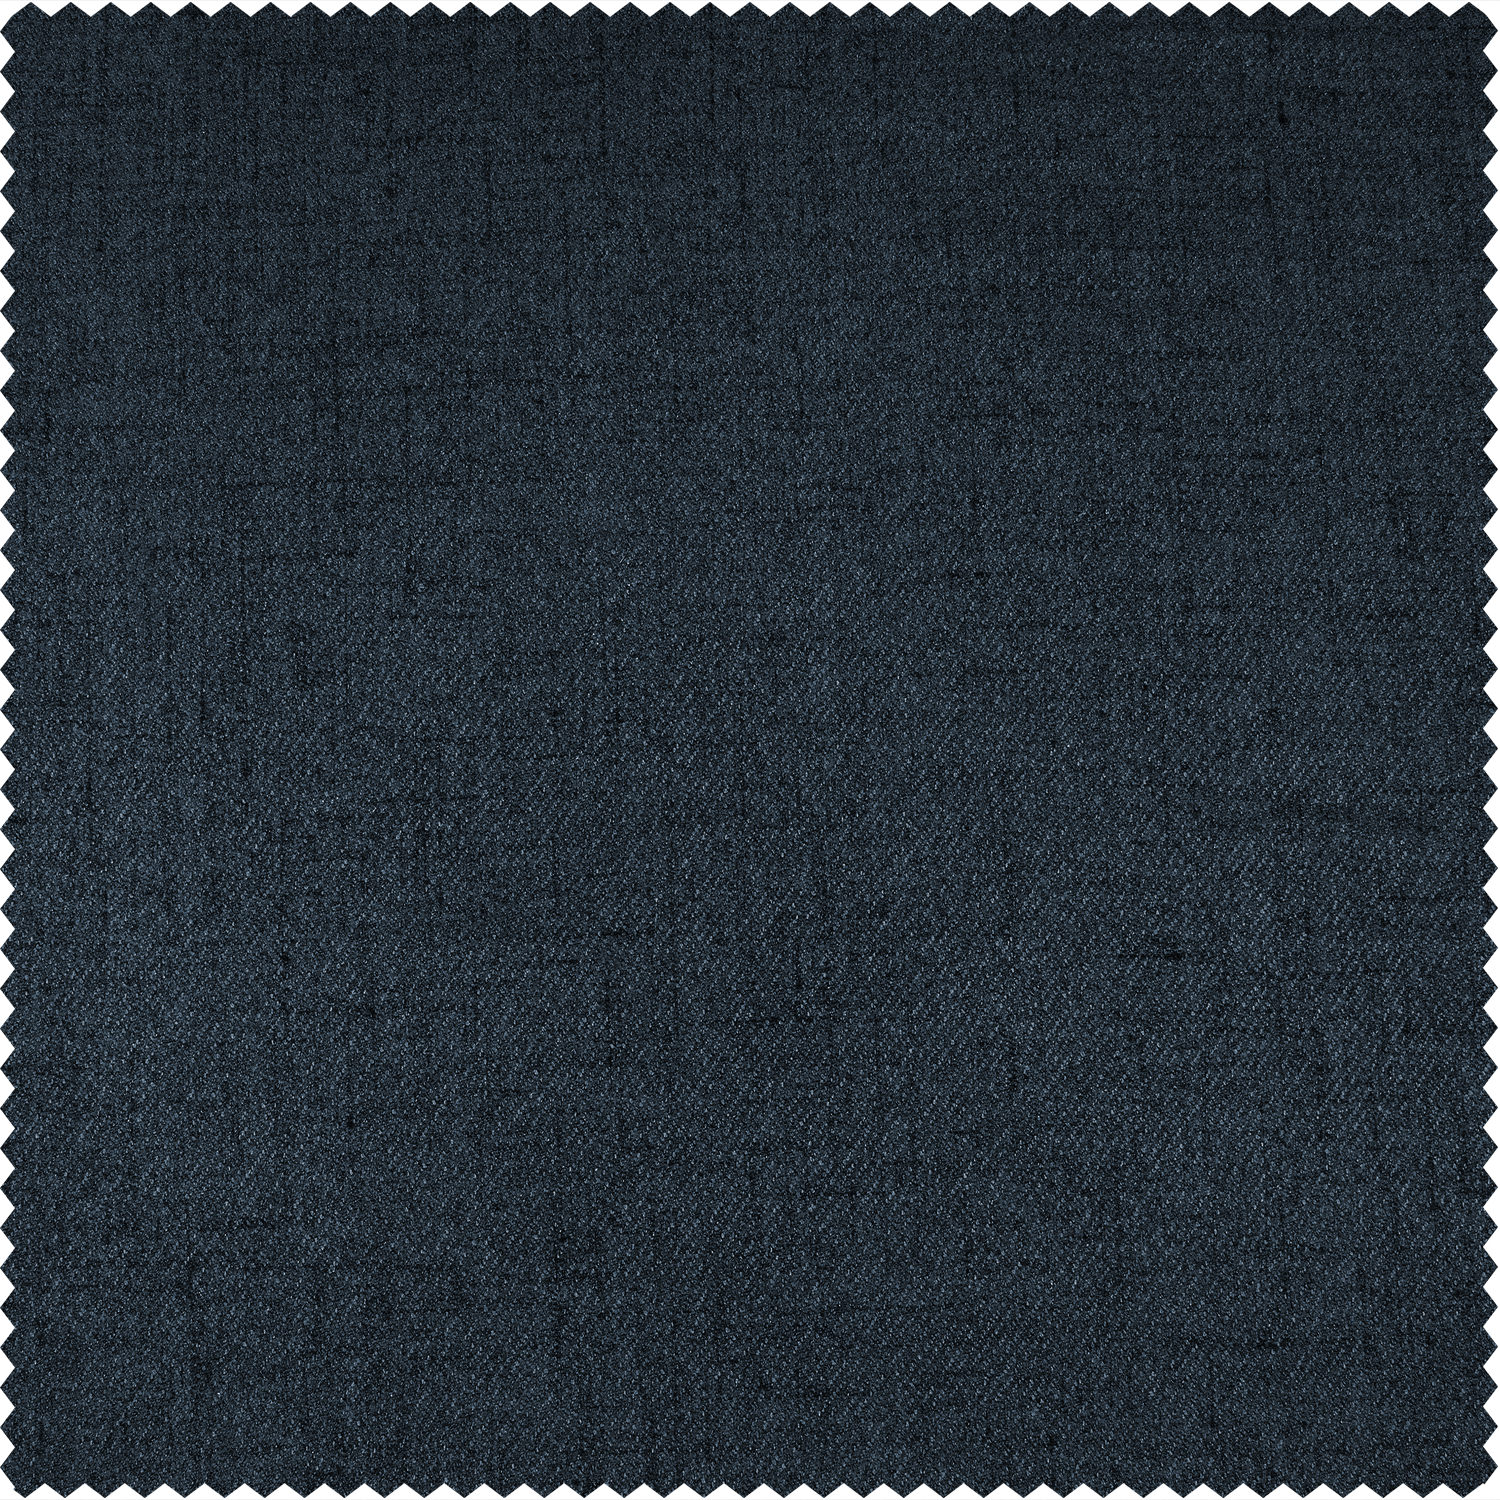 Dark Denim Blue Thermal Room Darkening Heathered Italian Woolen Weave Swatch